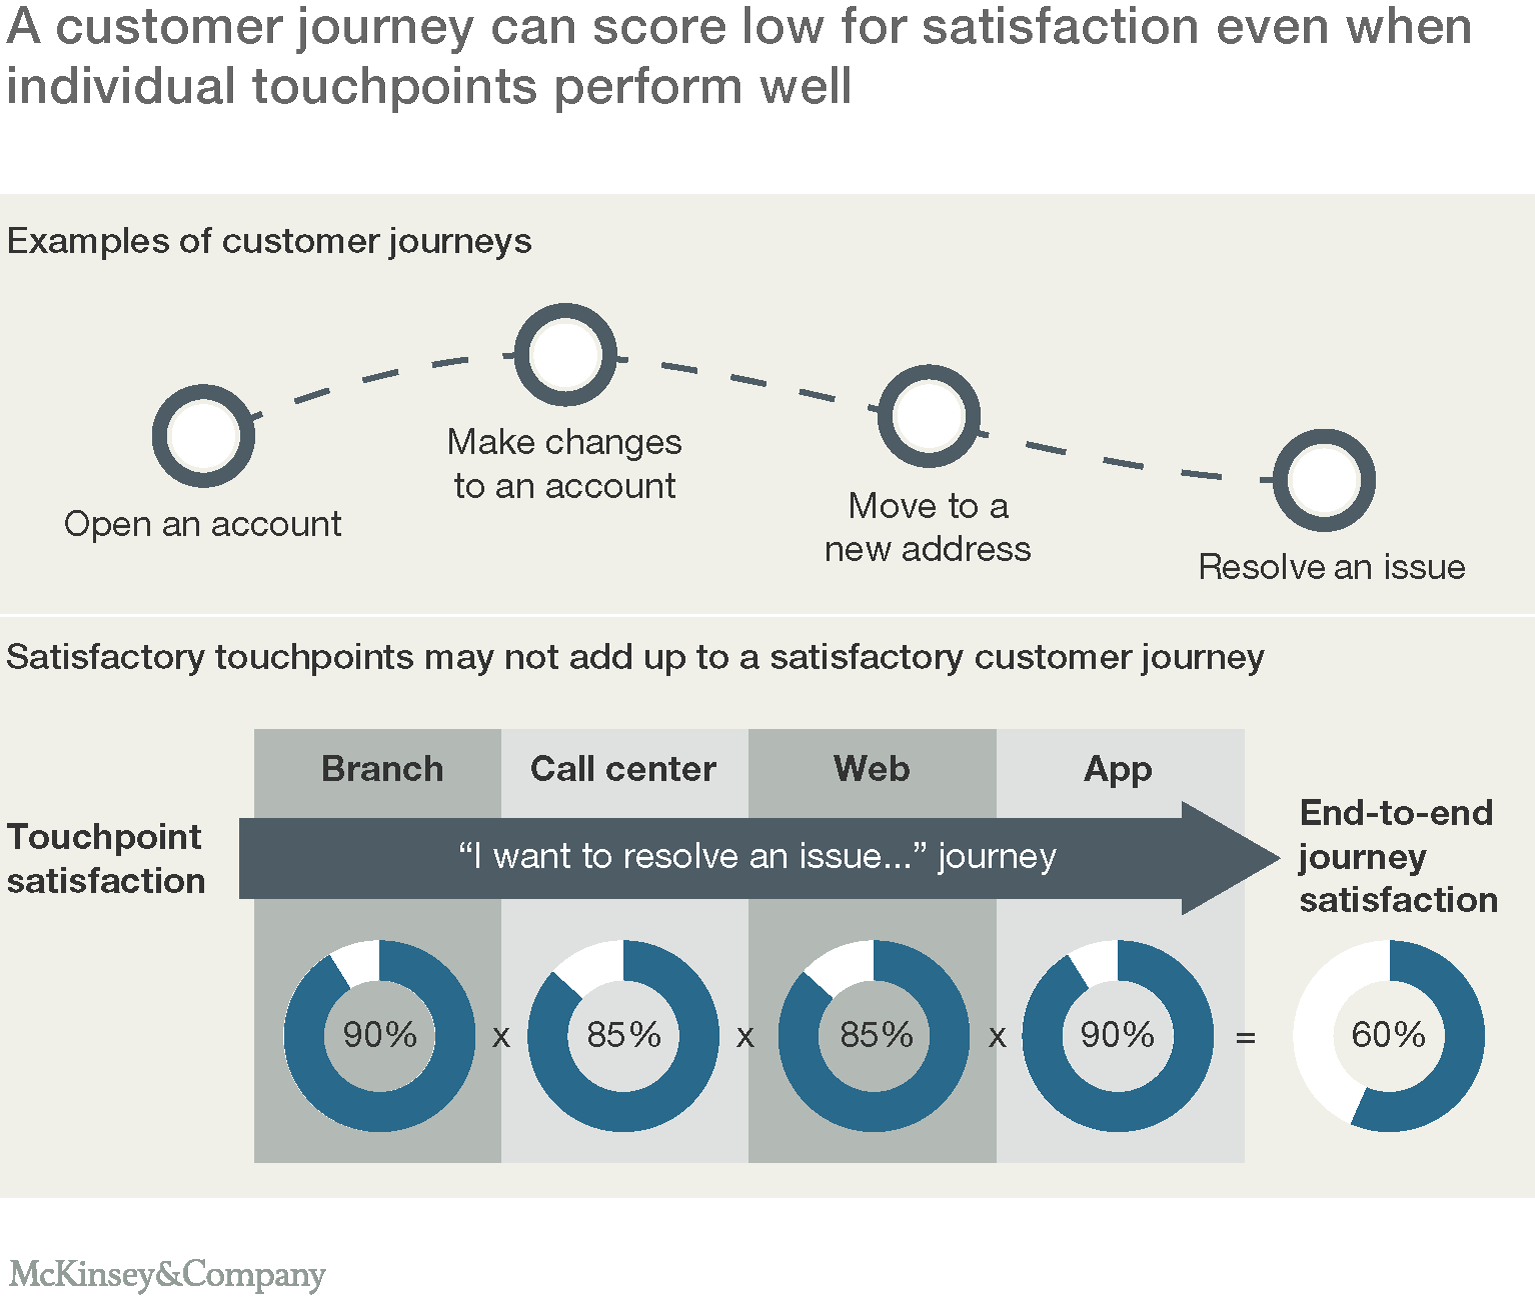 putting customer experience at the heart of next generation a customer journey can score low for satisfaction even when individual touchpoints score well